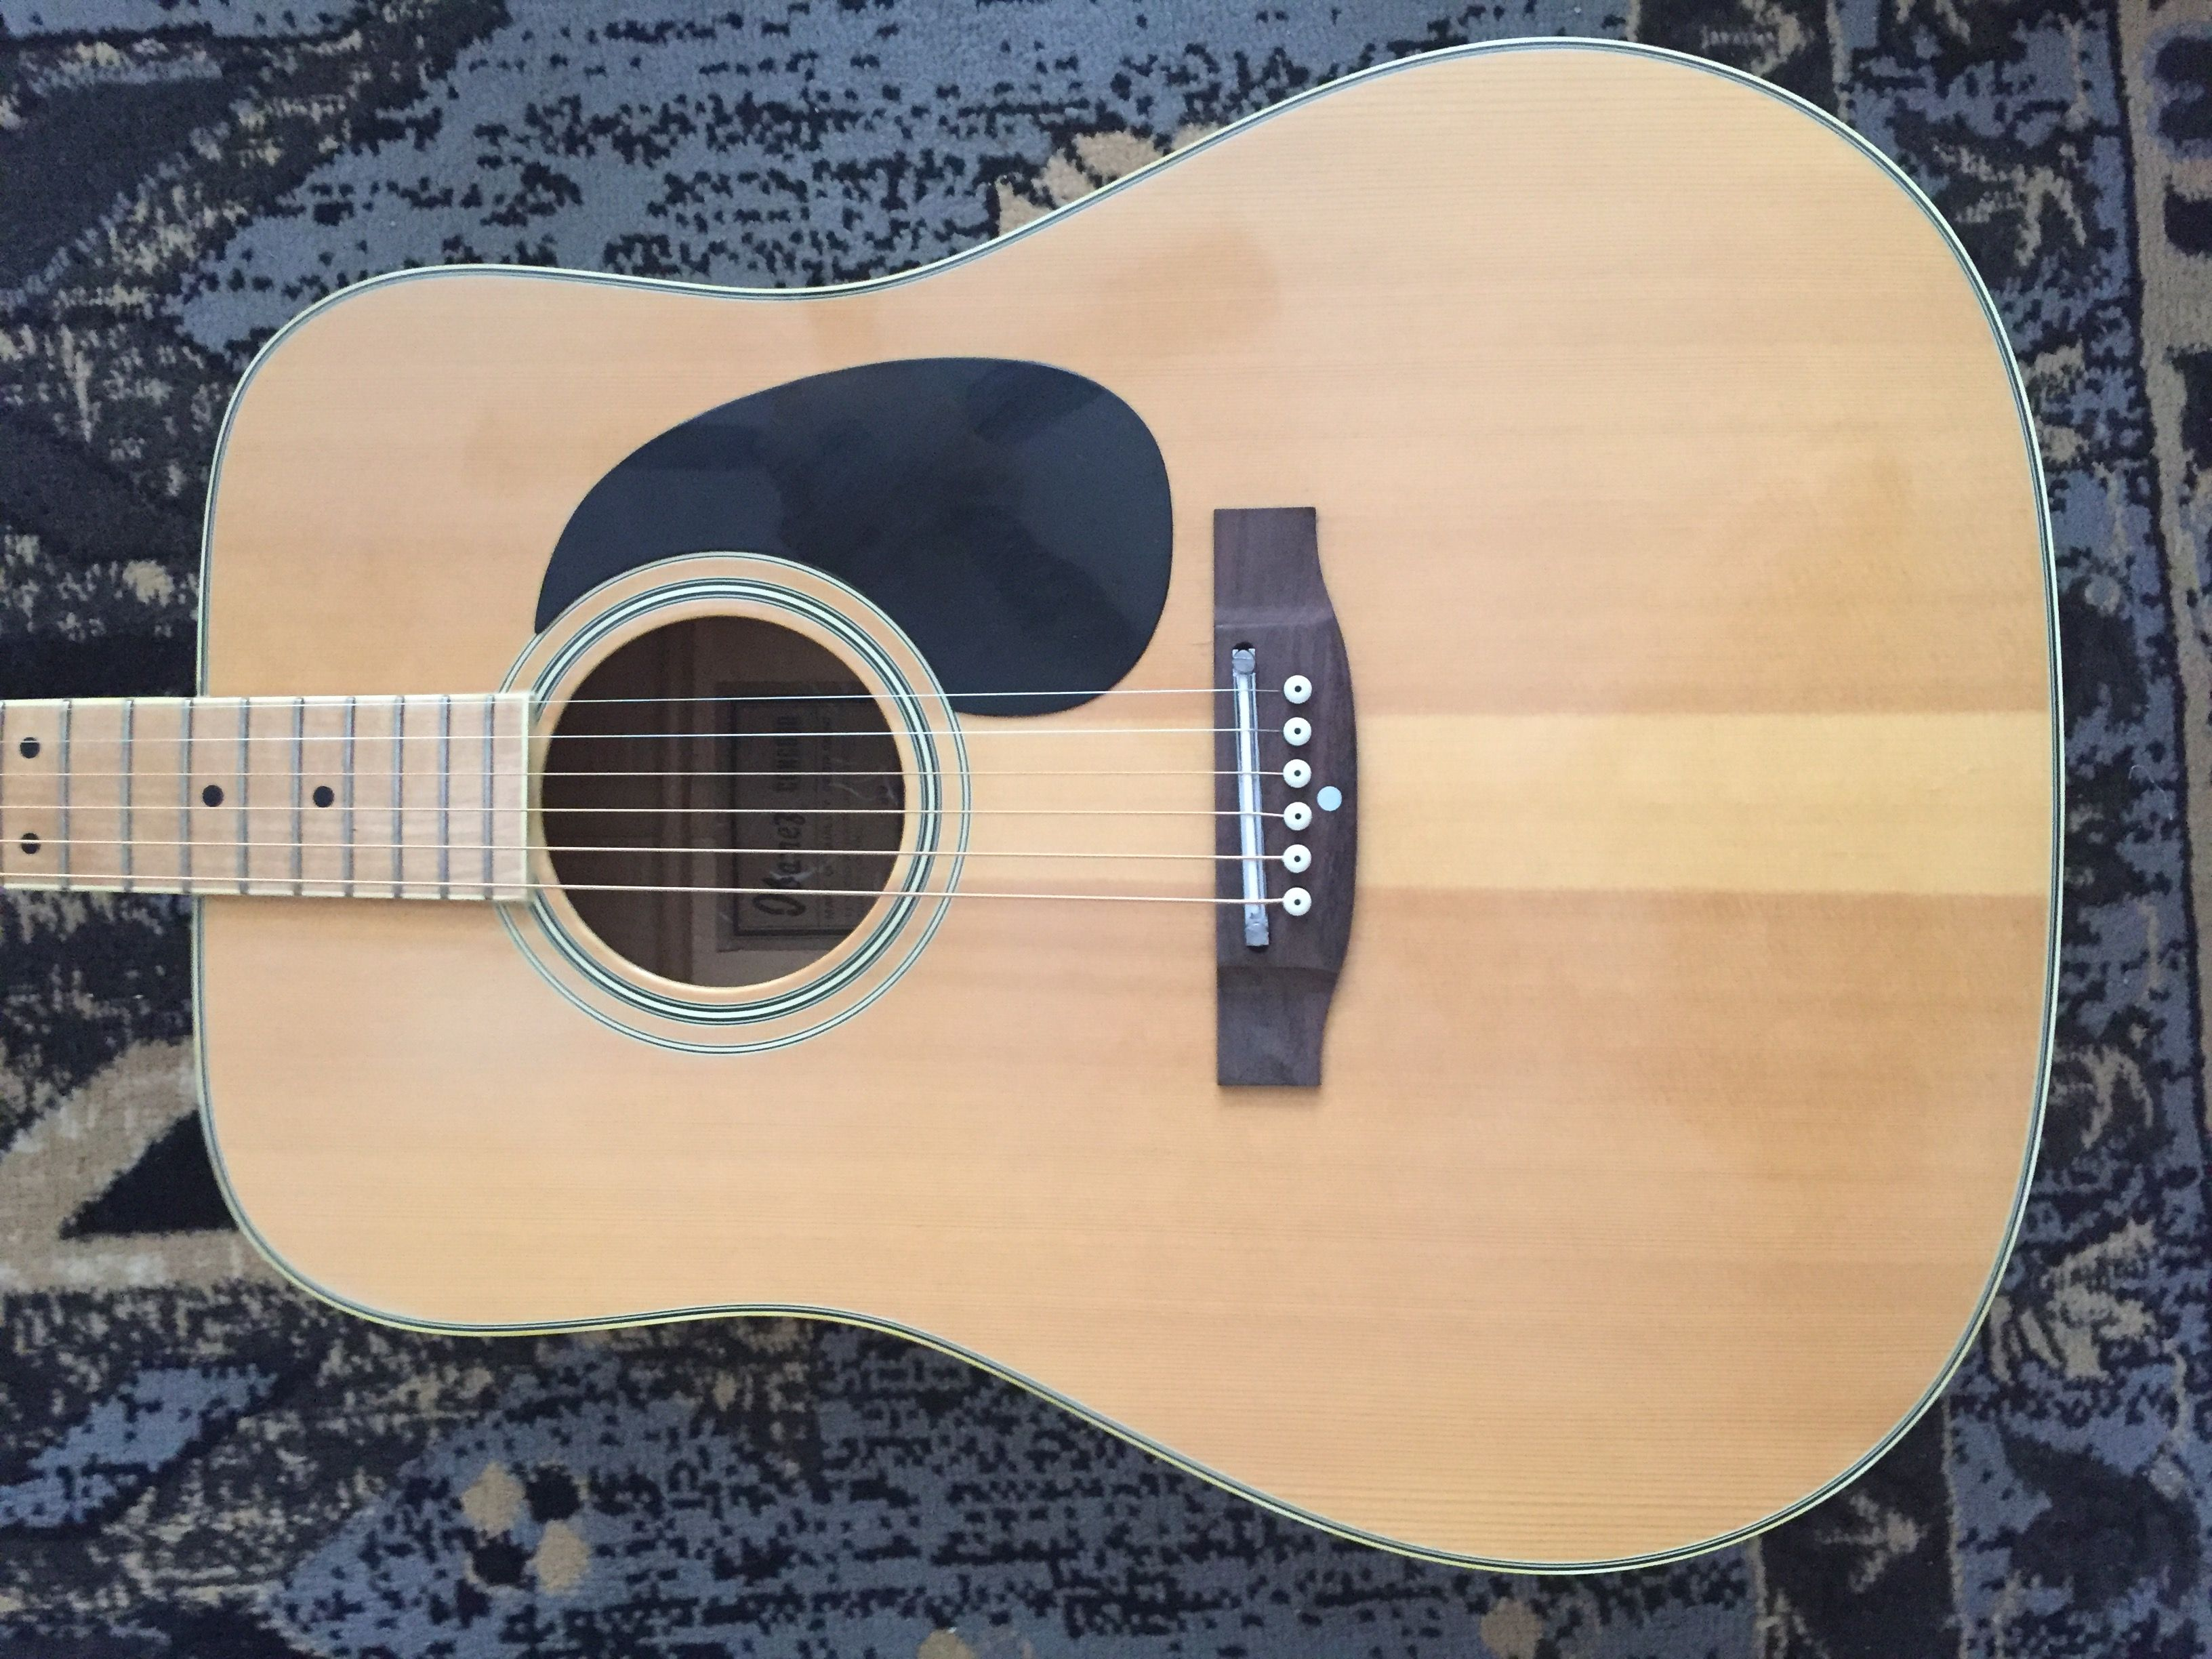 Adjustable Bridge Replacement On An Awesome 70s Ibanez Concord 699 She S An All Maple Beauty Other Than The New Rosewood Bridge Music Online Ibanez Acoustic